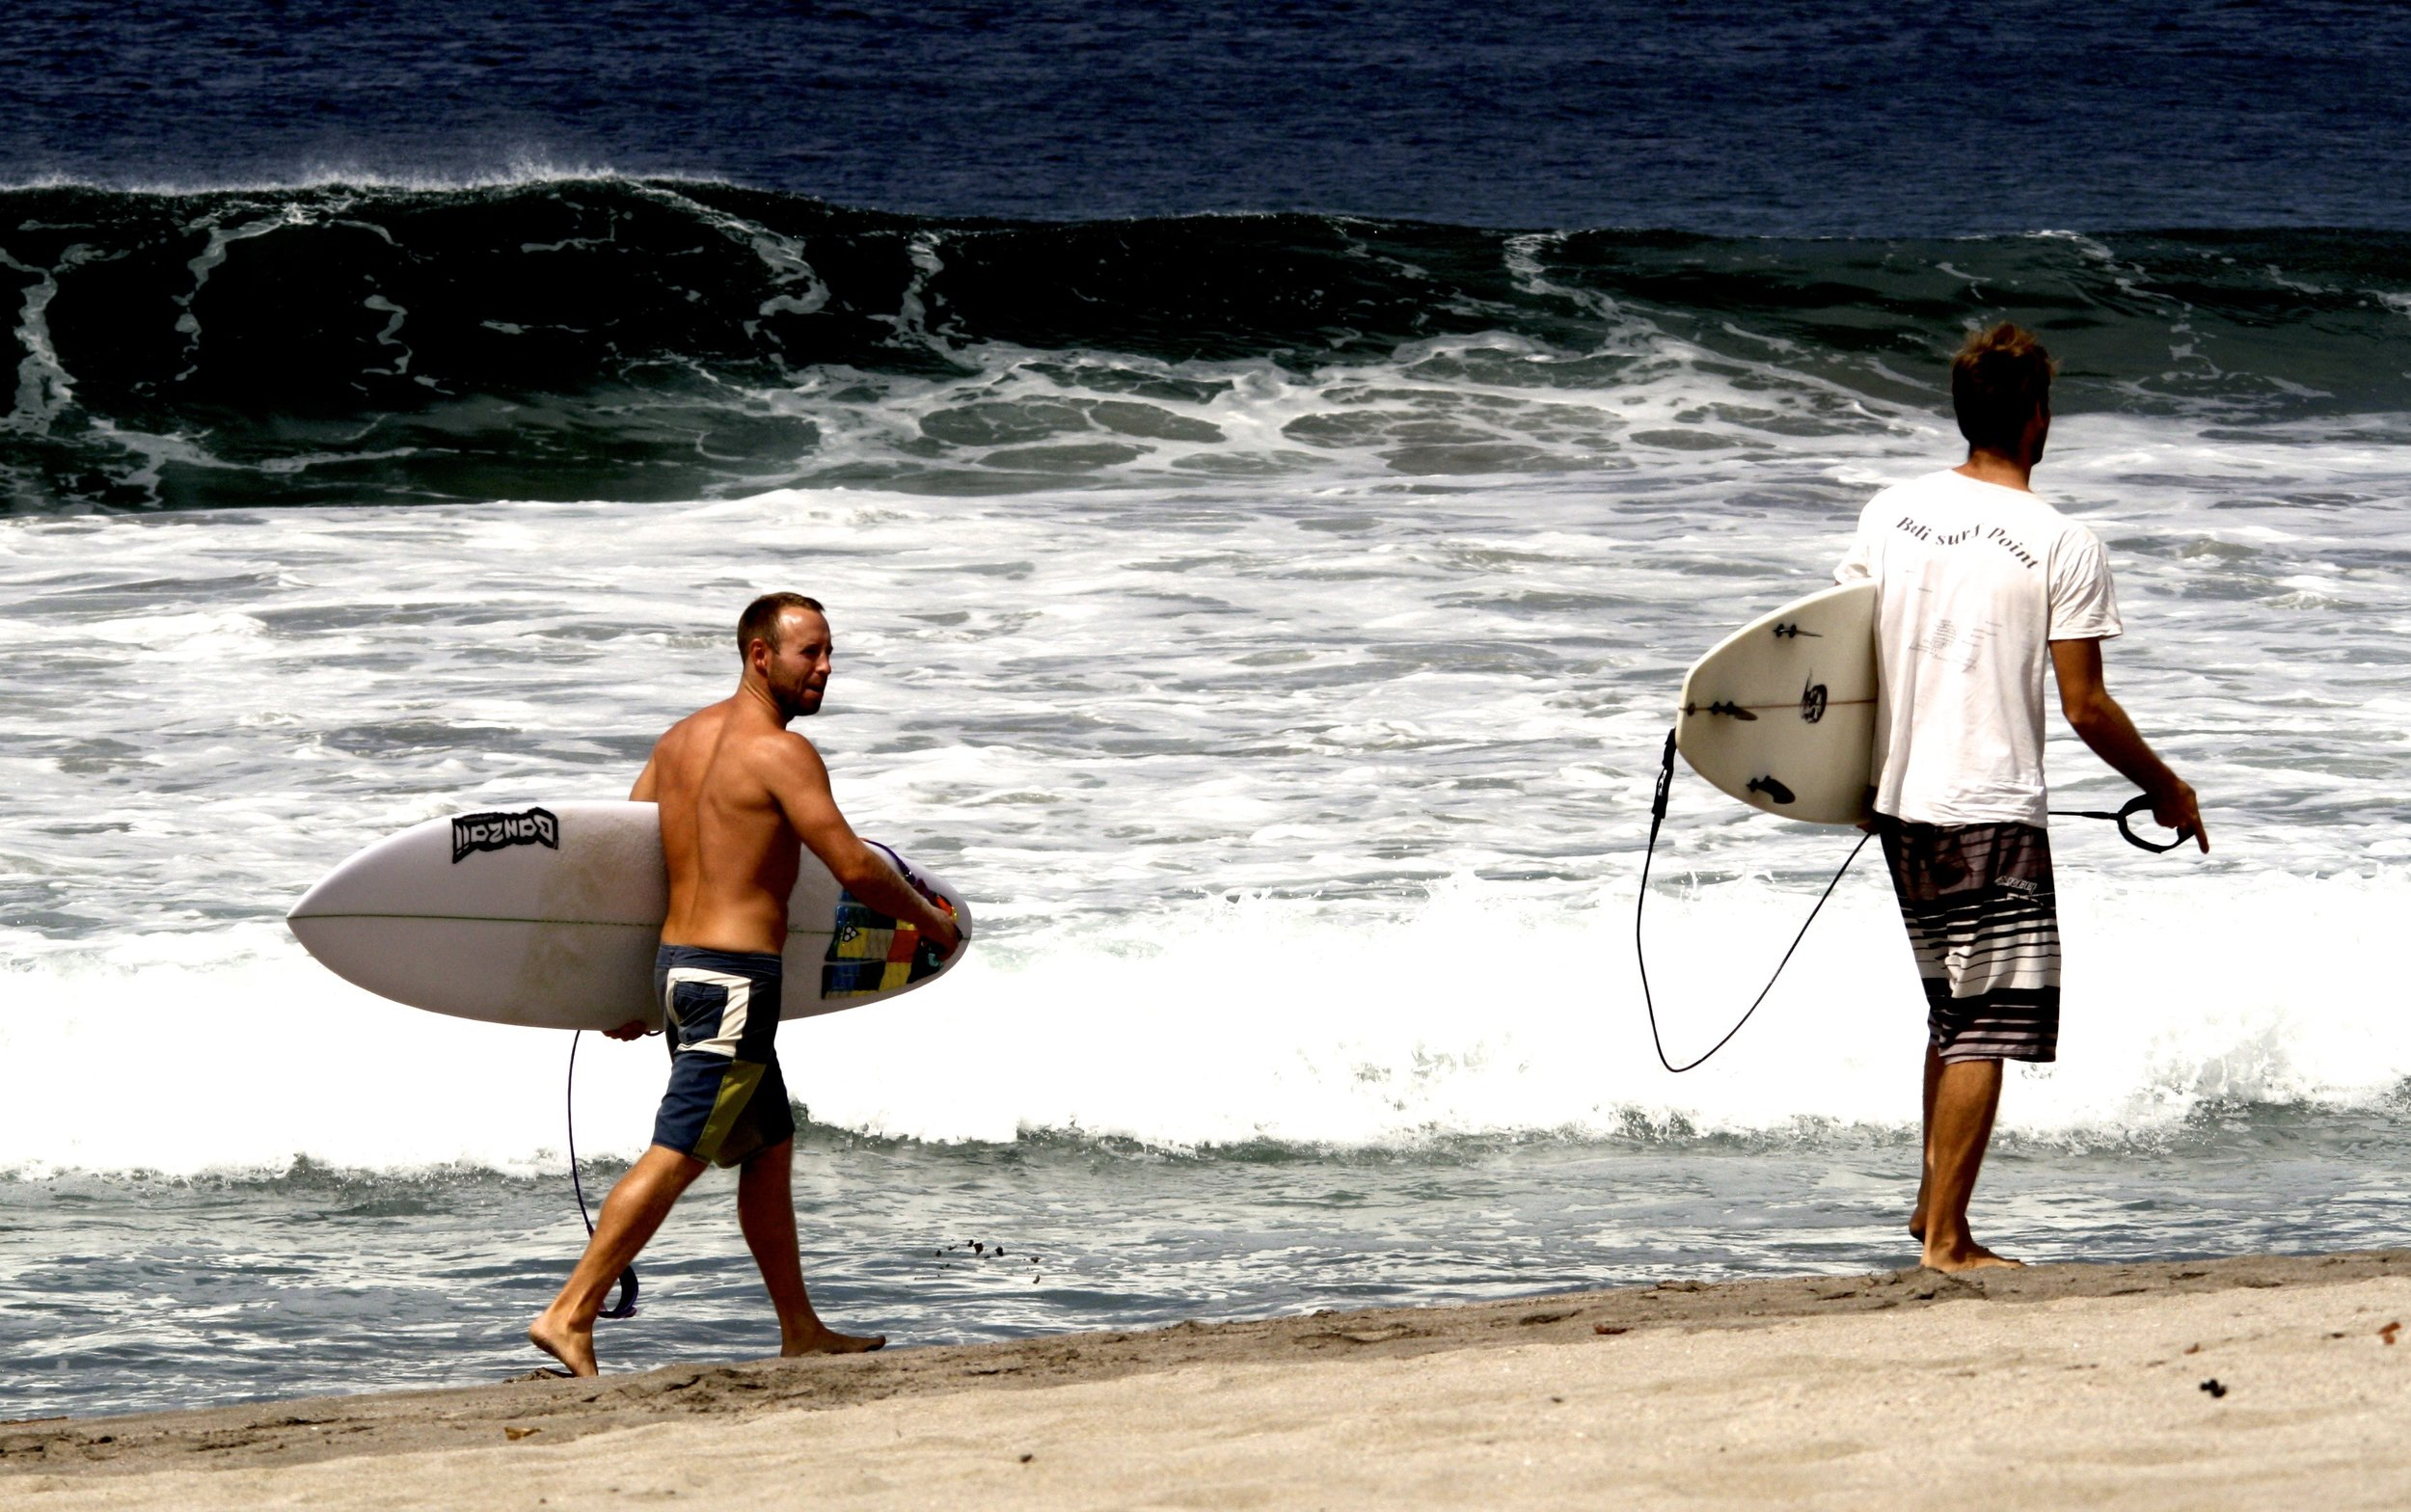 Best Surf Coach. Surf coach. Surf Lessons. Learning to surf. Surf Instructor. Surfing School.